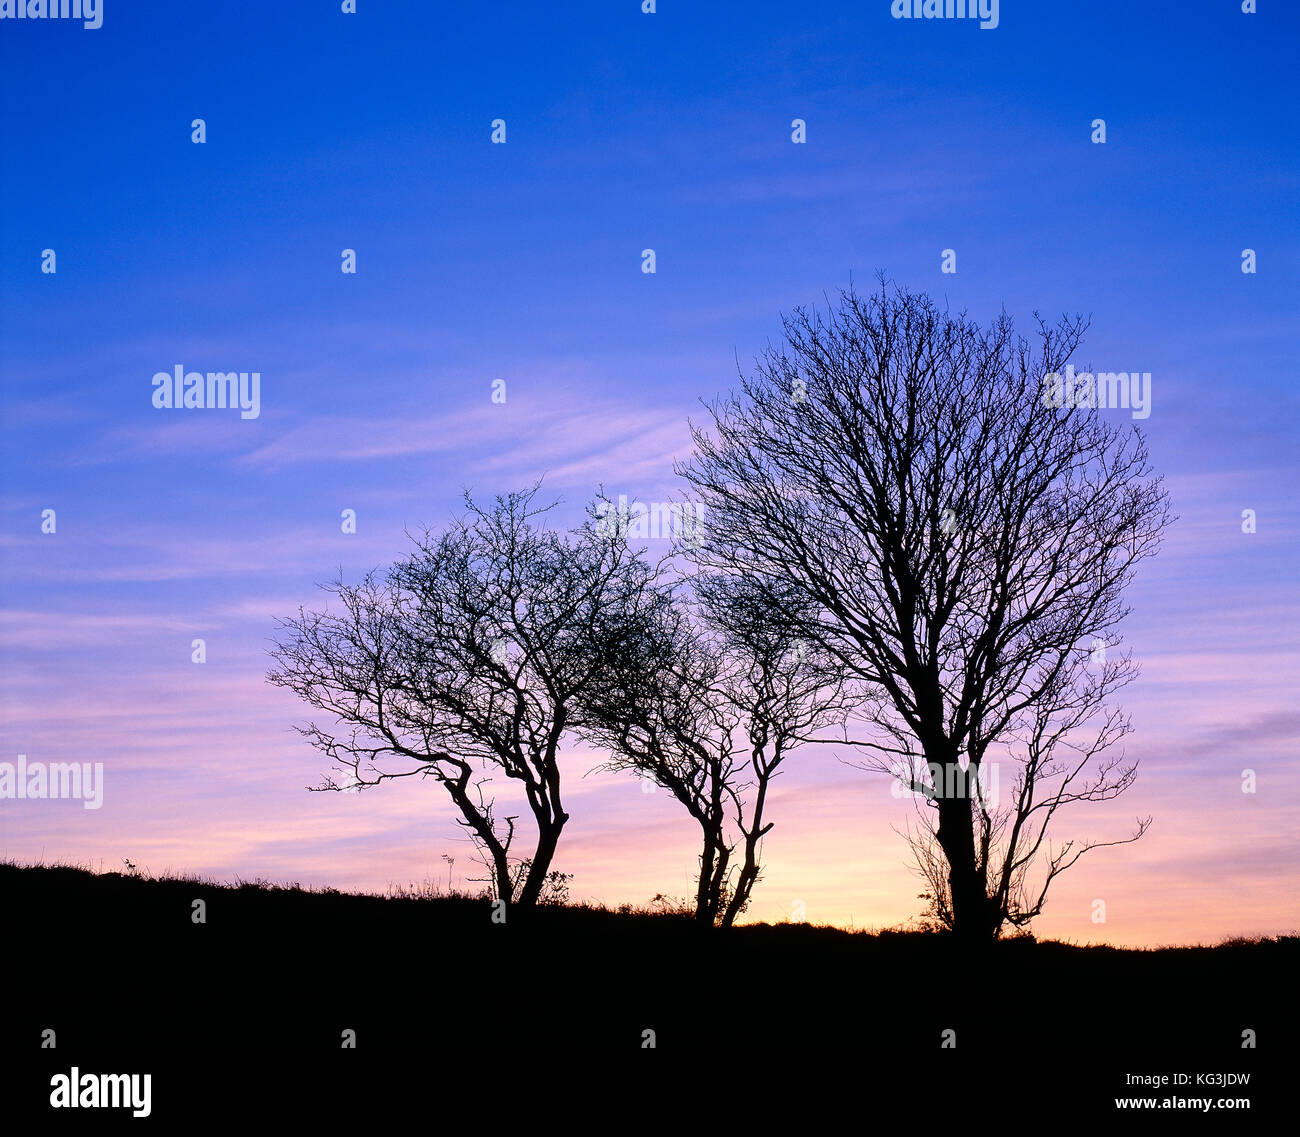 Channel Islands. Guernsey. Silhouette of leafless trees in winter sunset. - Stock Image